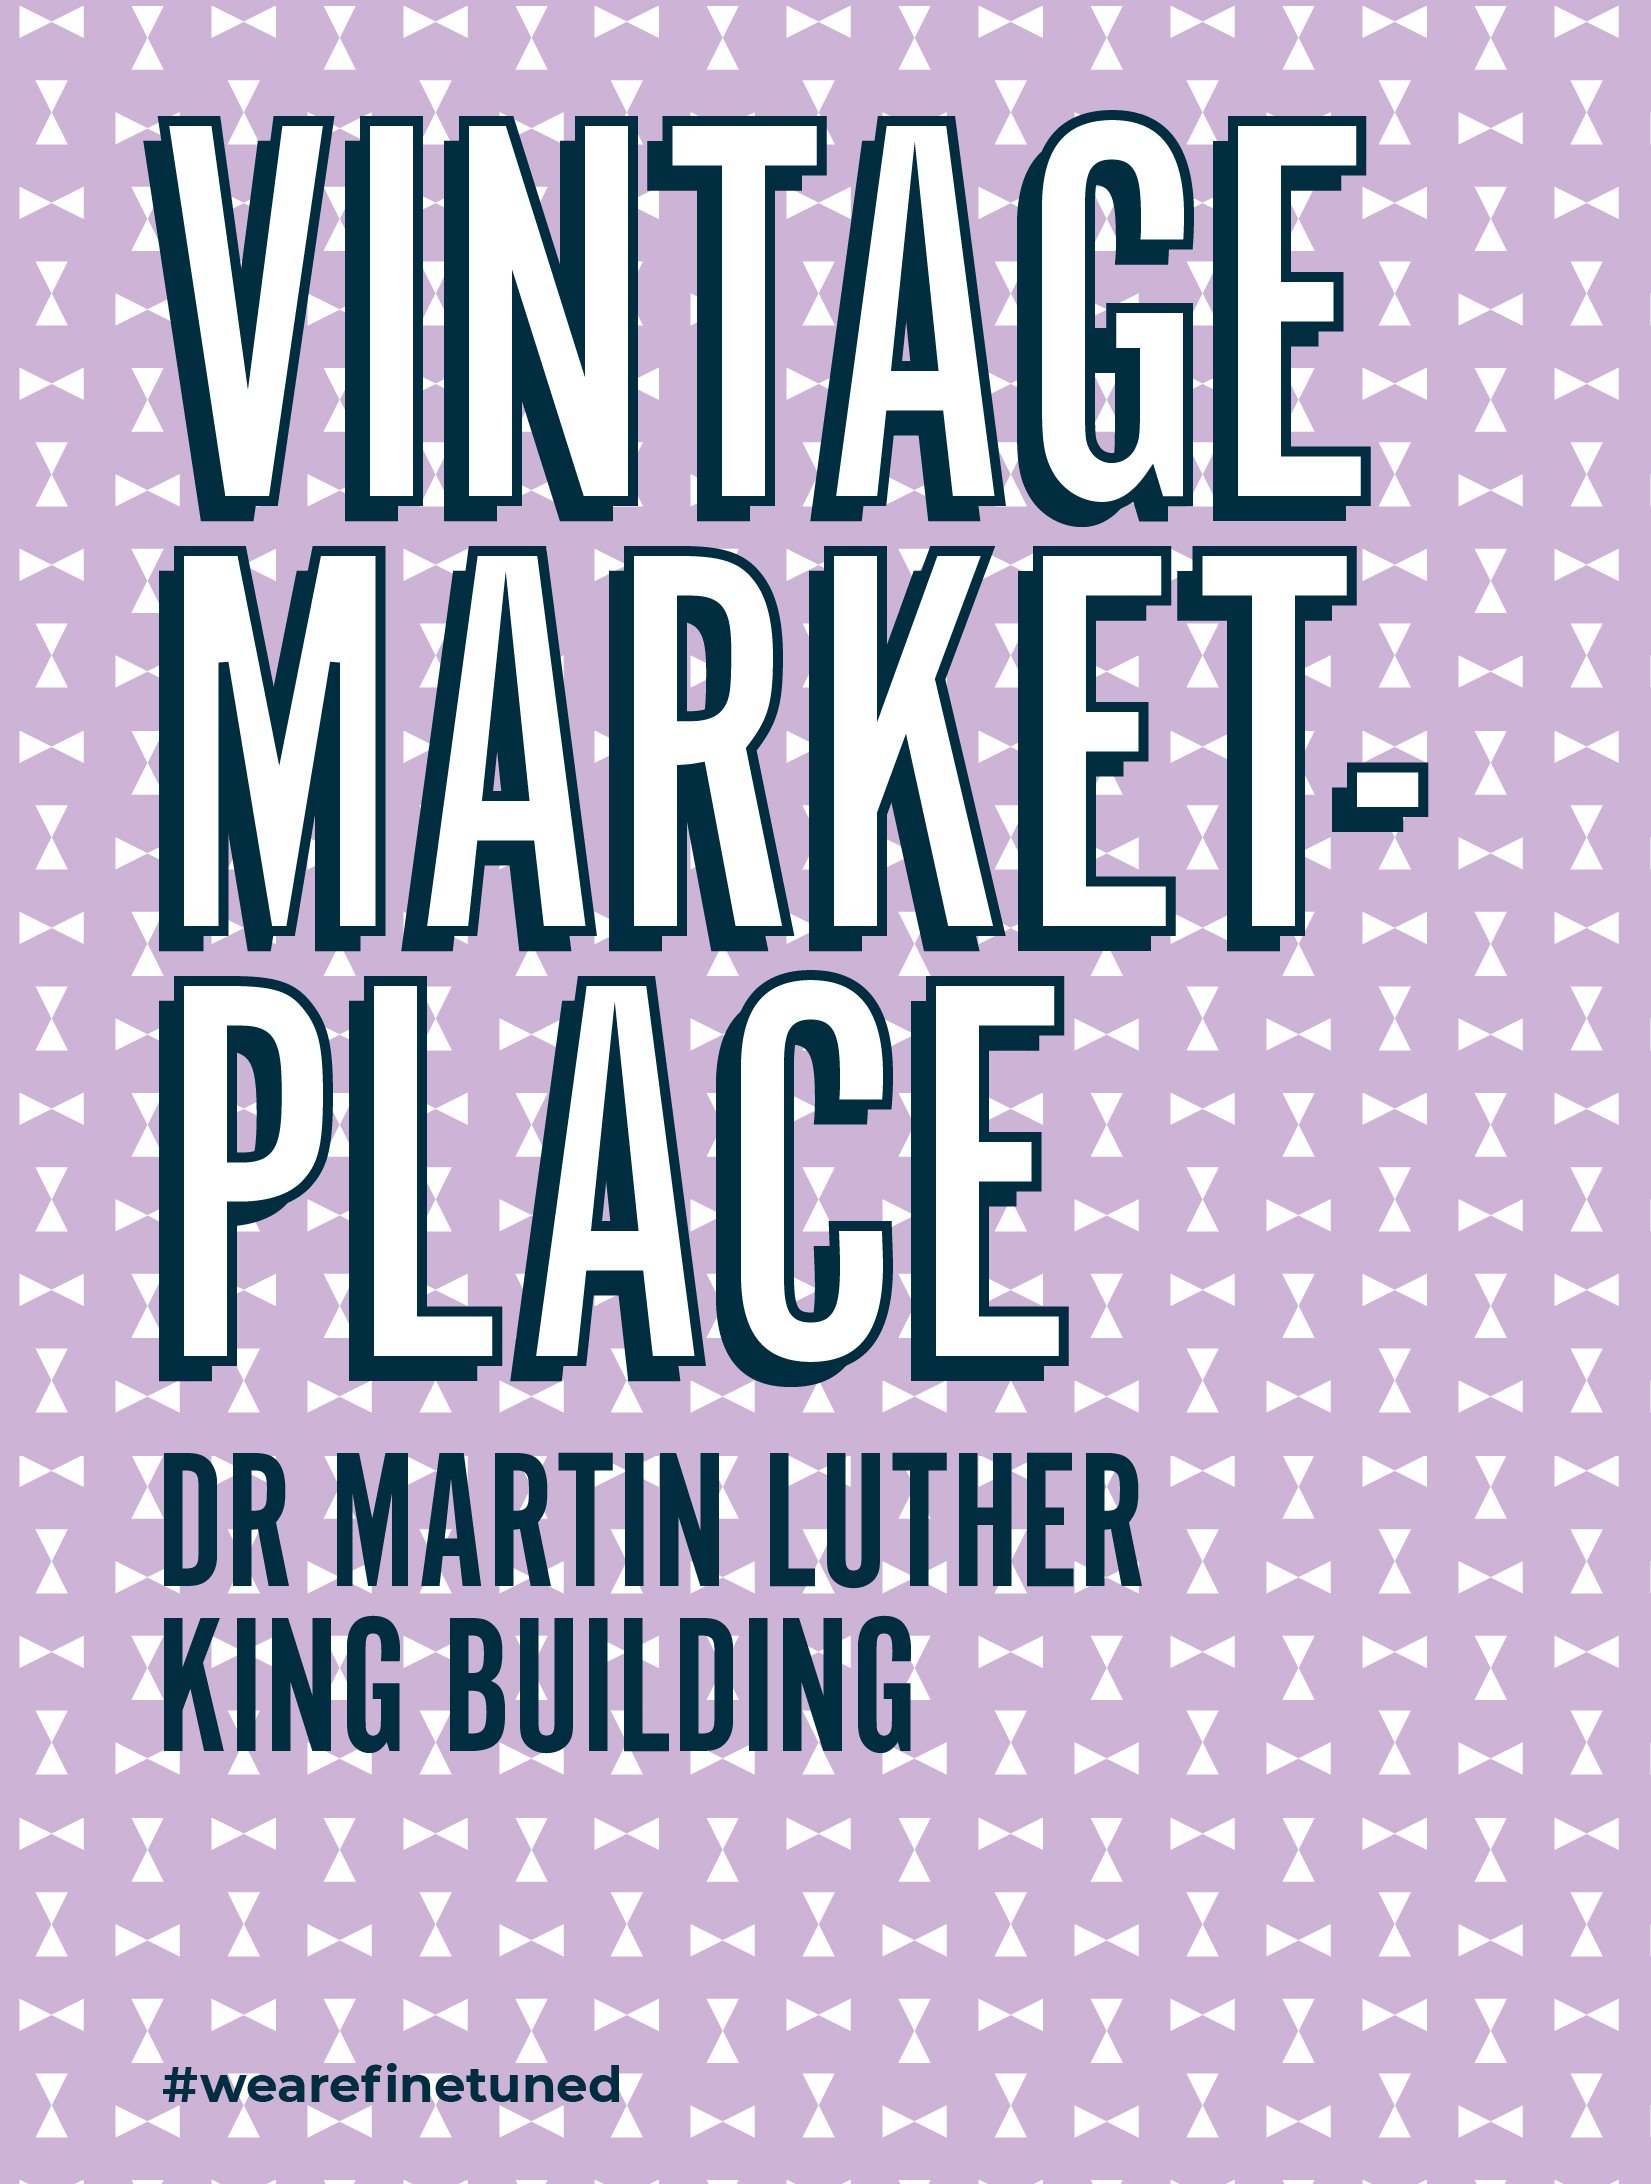 vintage marketplace